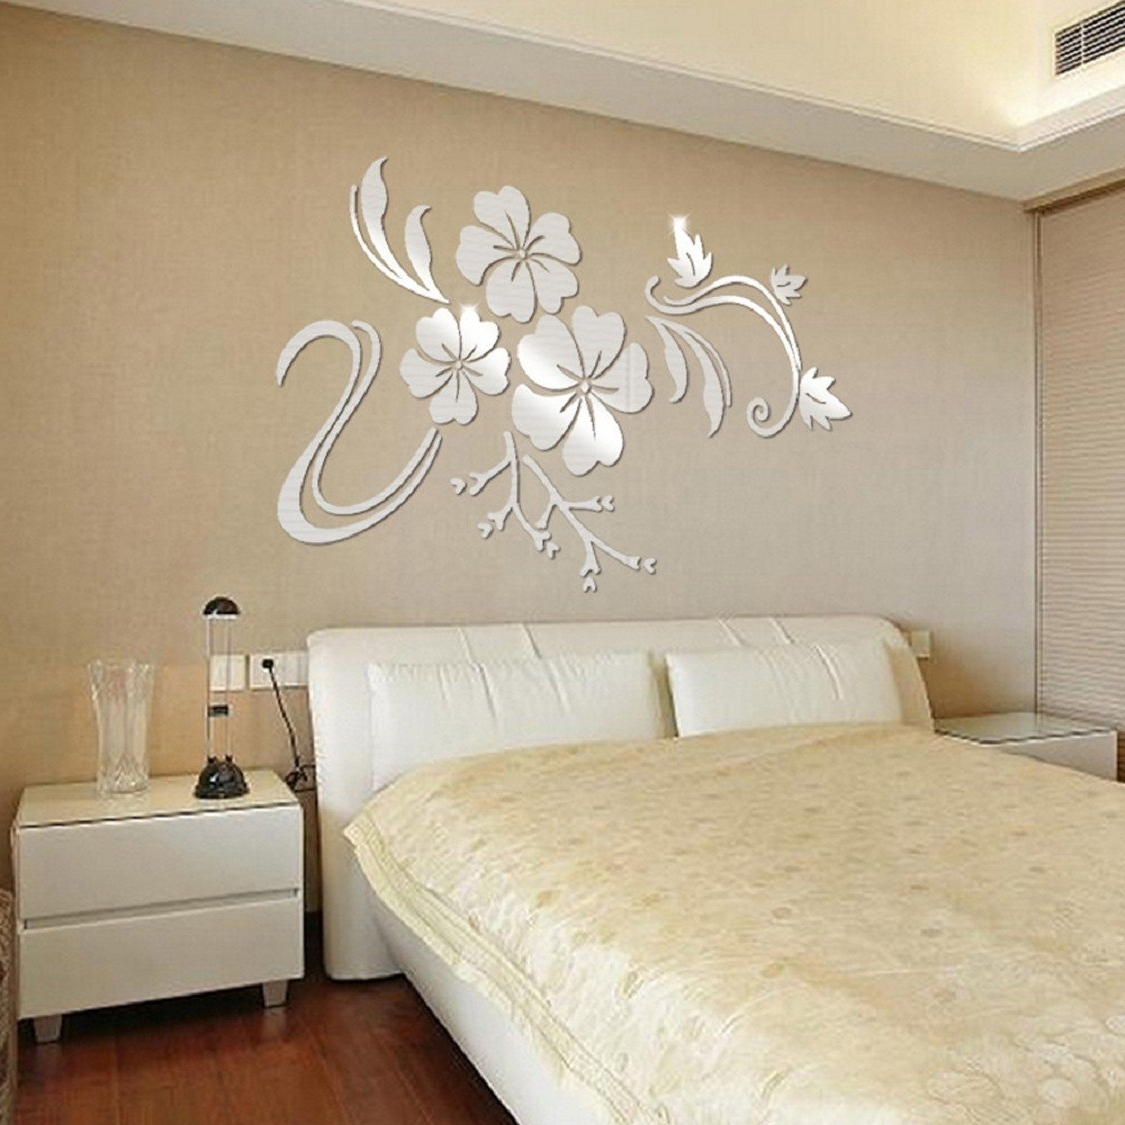 Most Popular Ikevan 1set Acrylic Art 3d Mirror Flower Wall Stickers Diy Home Intended For Removable Wall Accents (View 2 of 15)